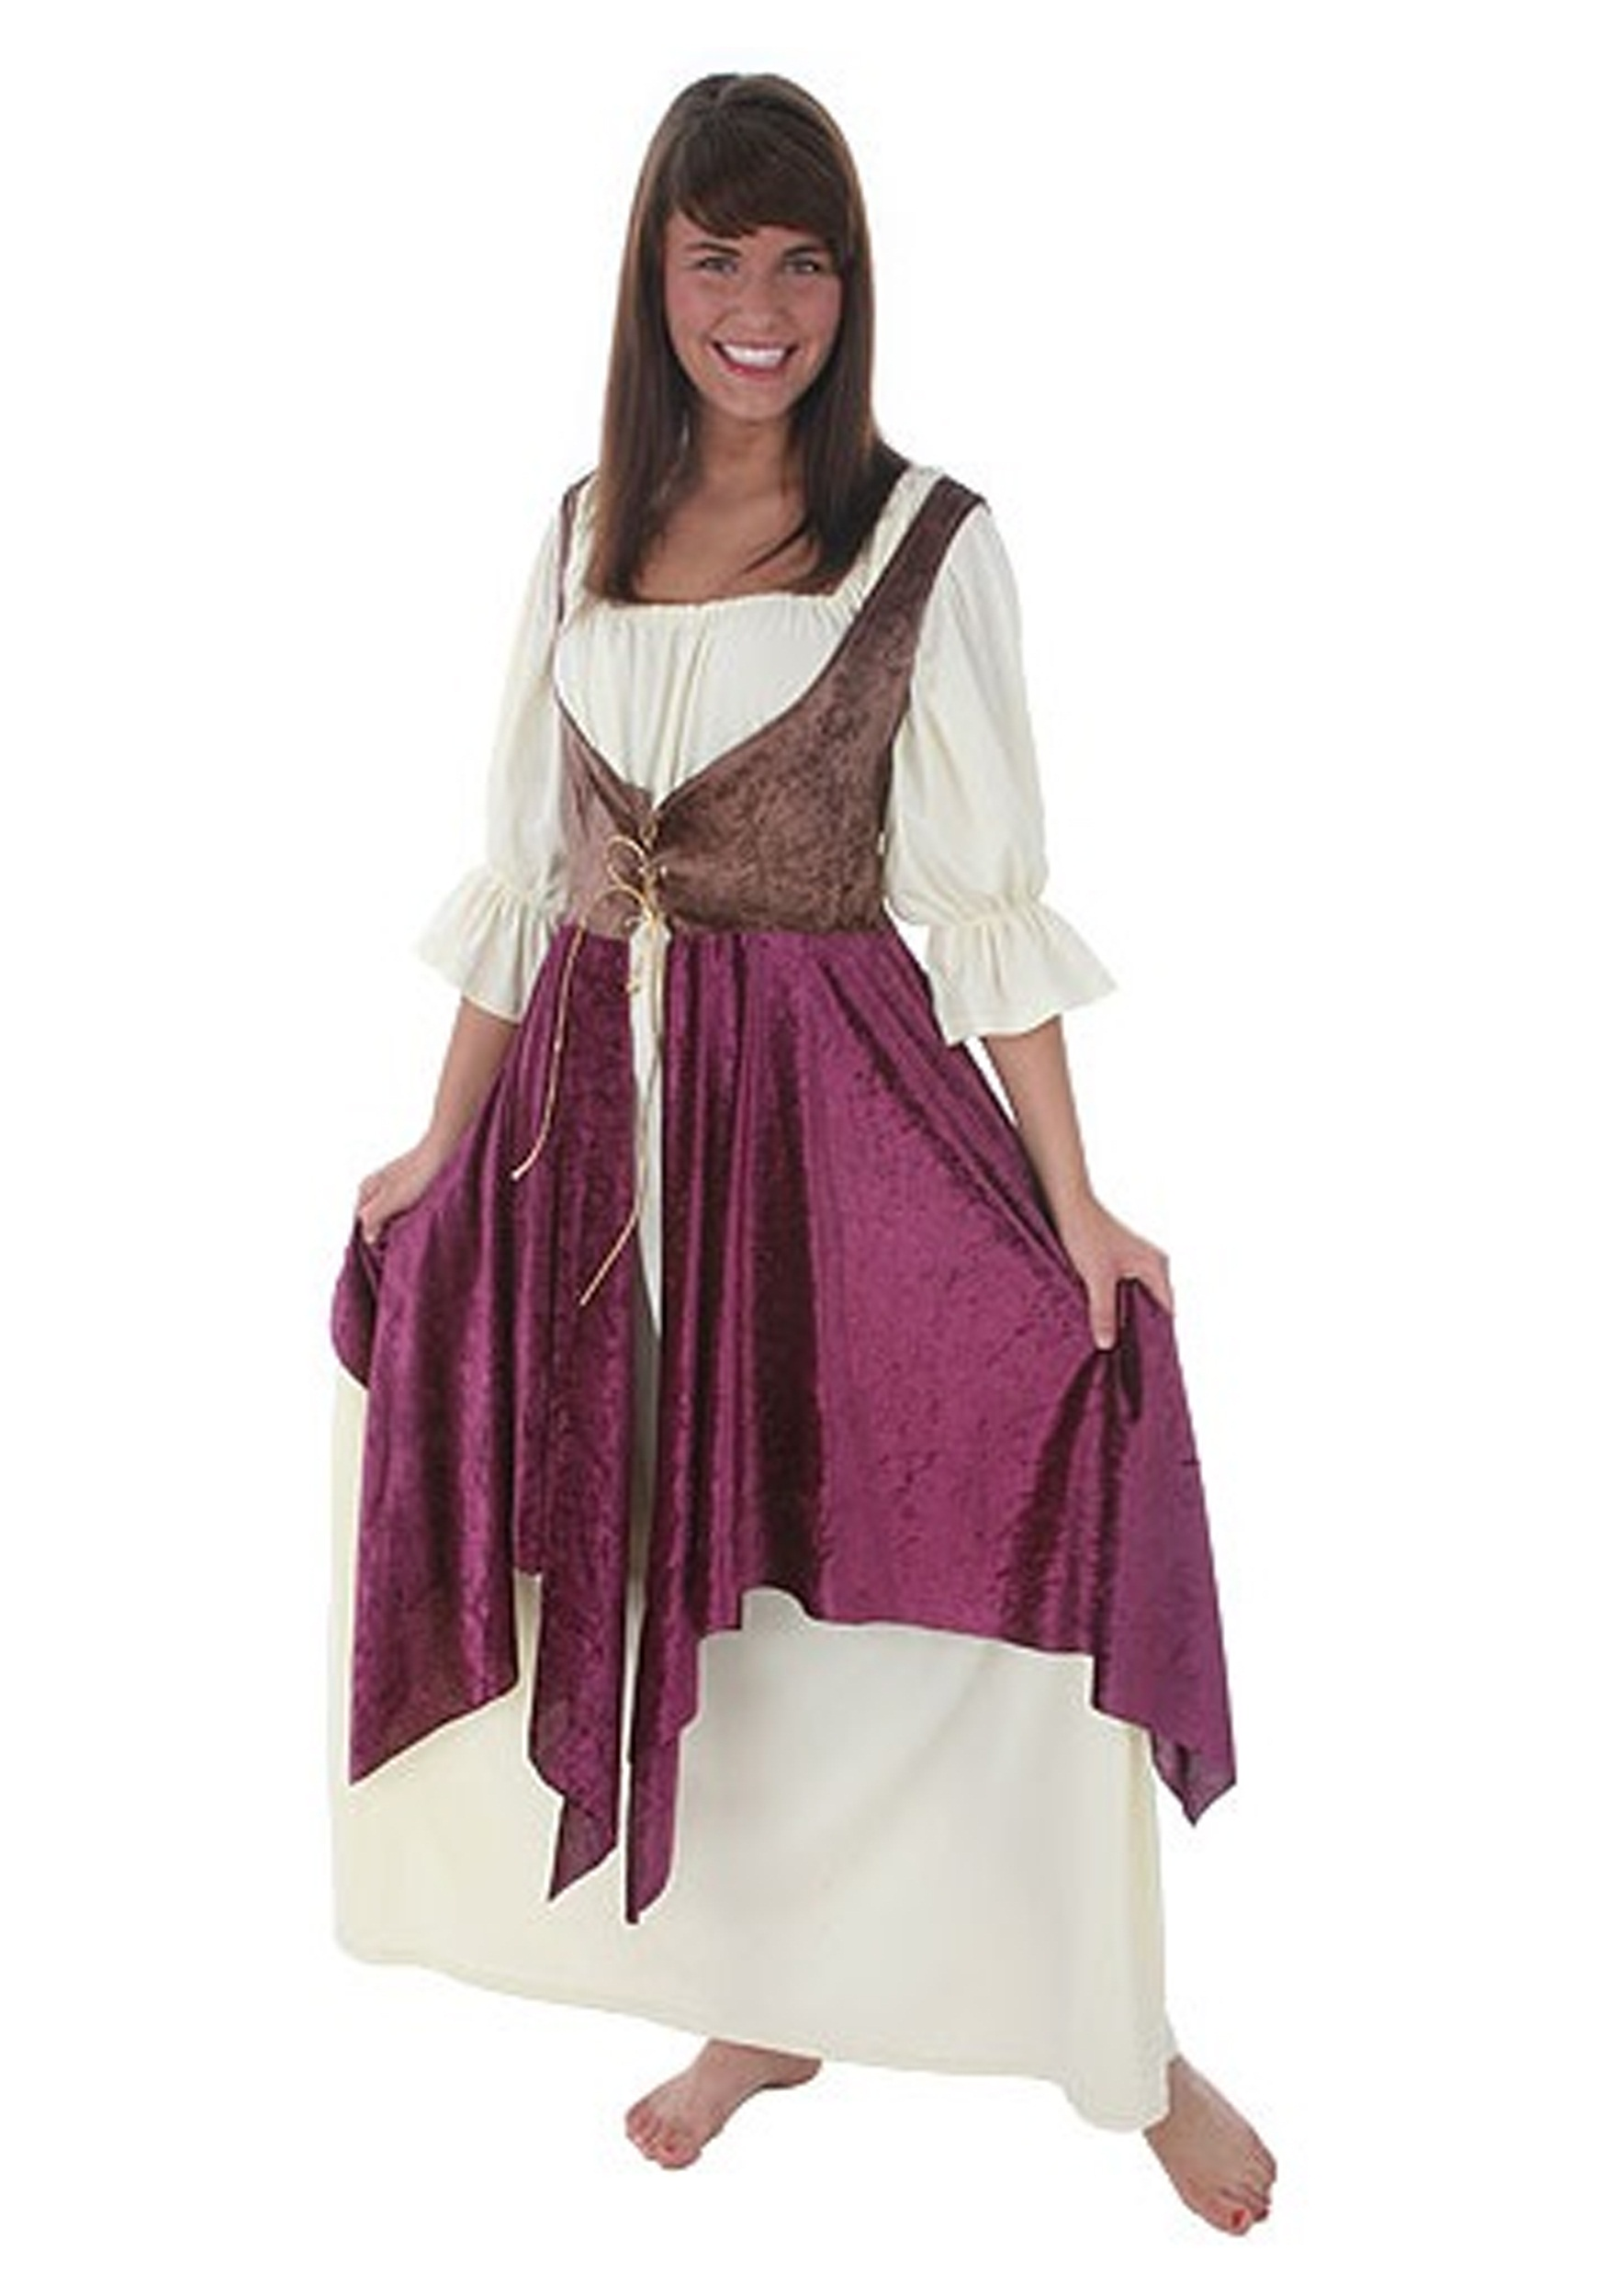 pirate costumes for women female costume